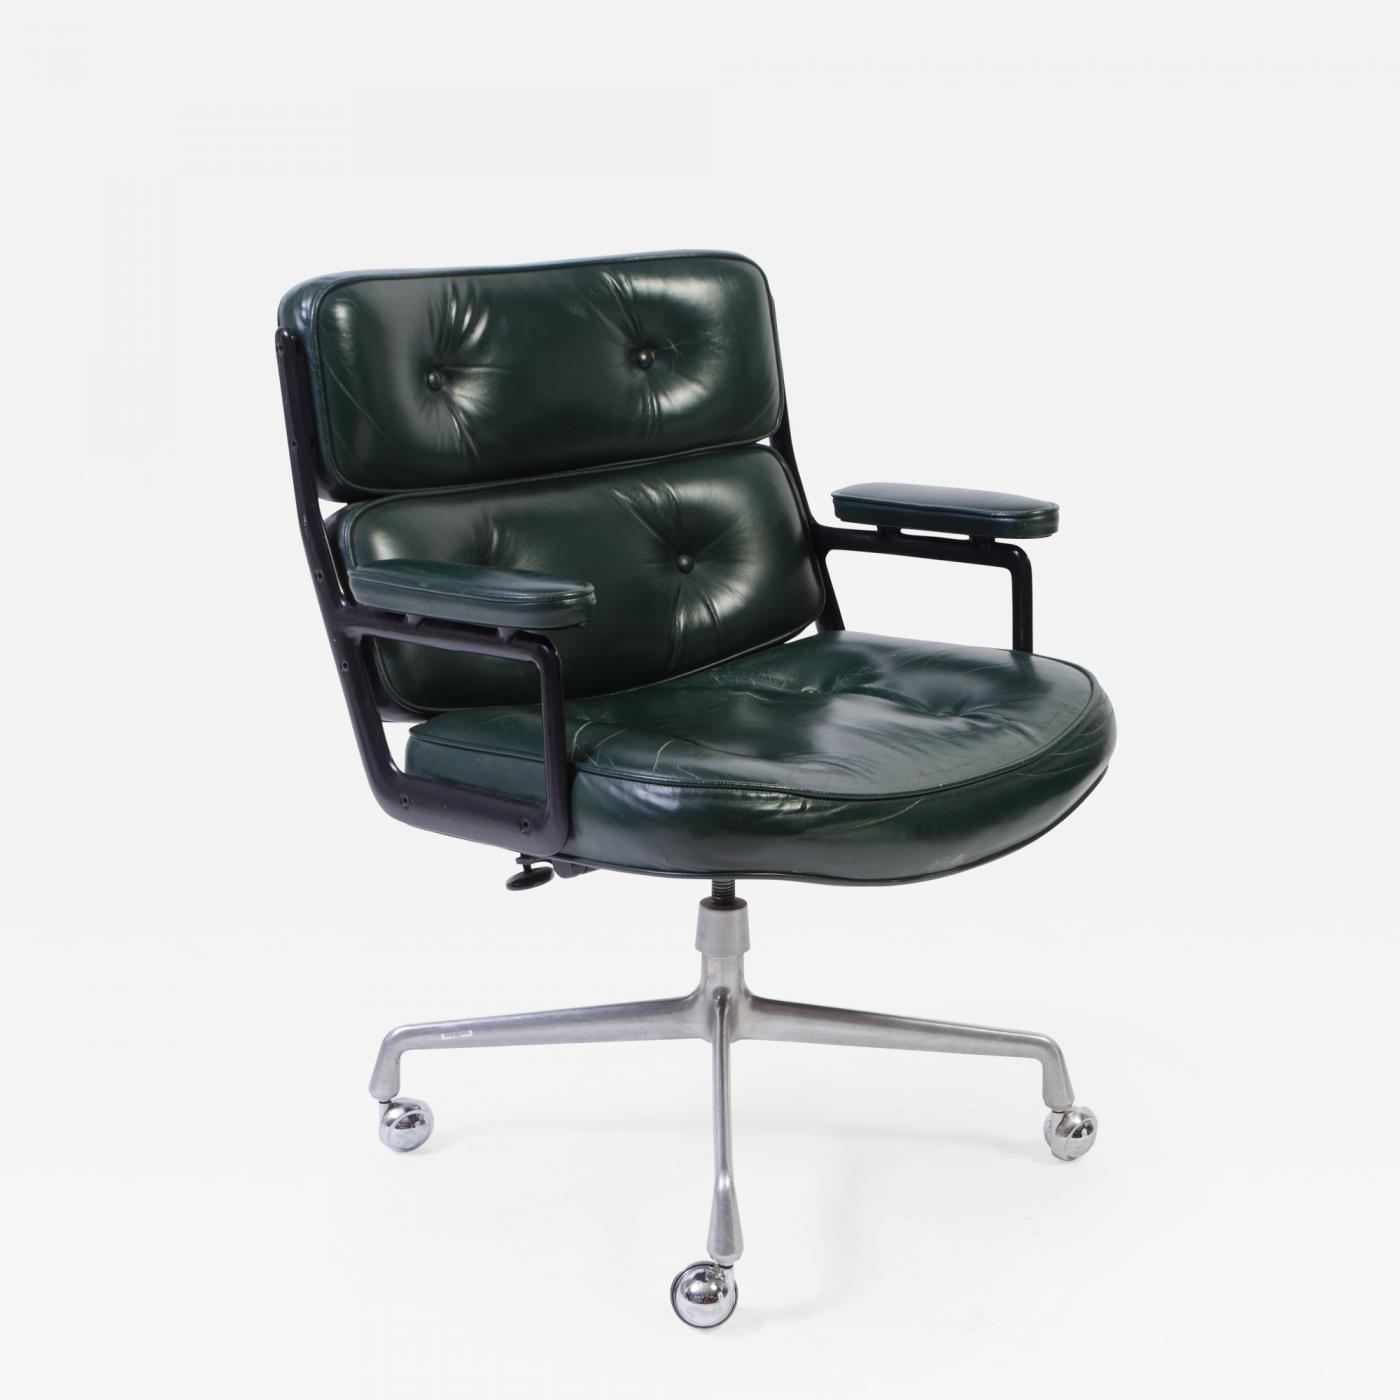 Charles Eames Time Life Chair by Eames for Herman Miller in